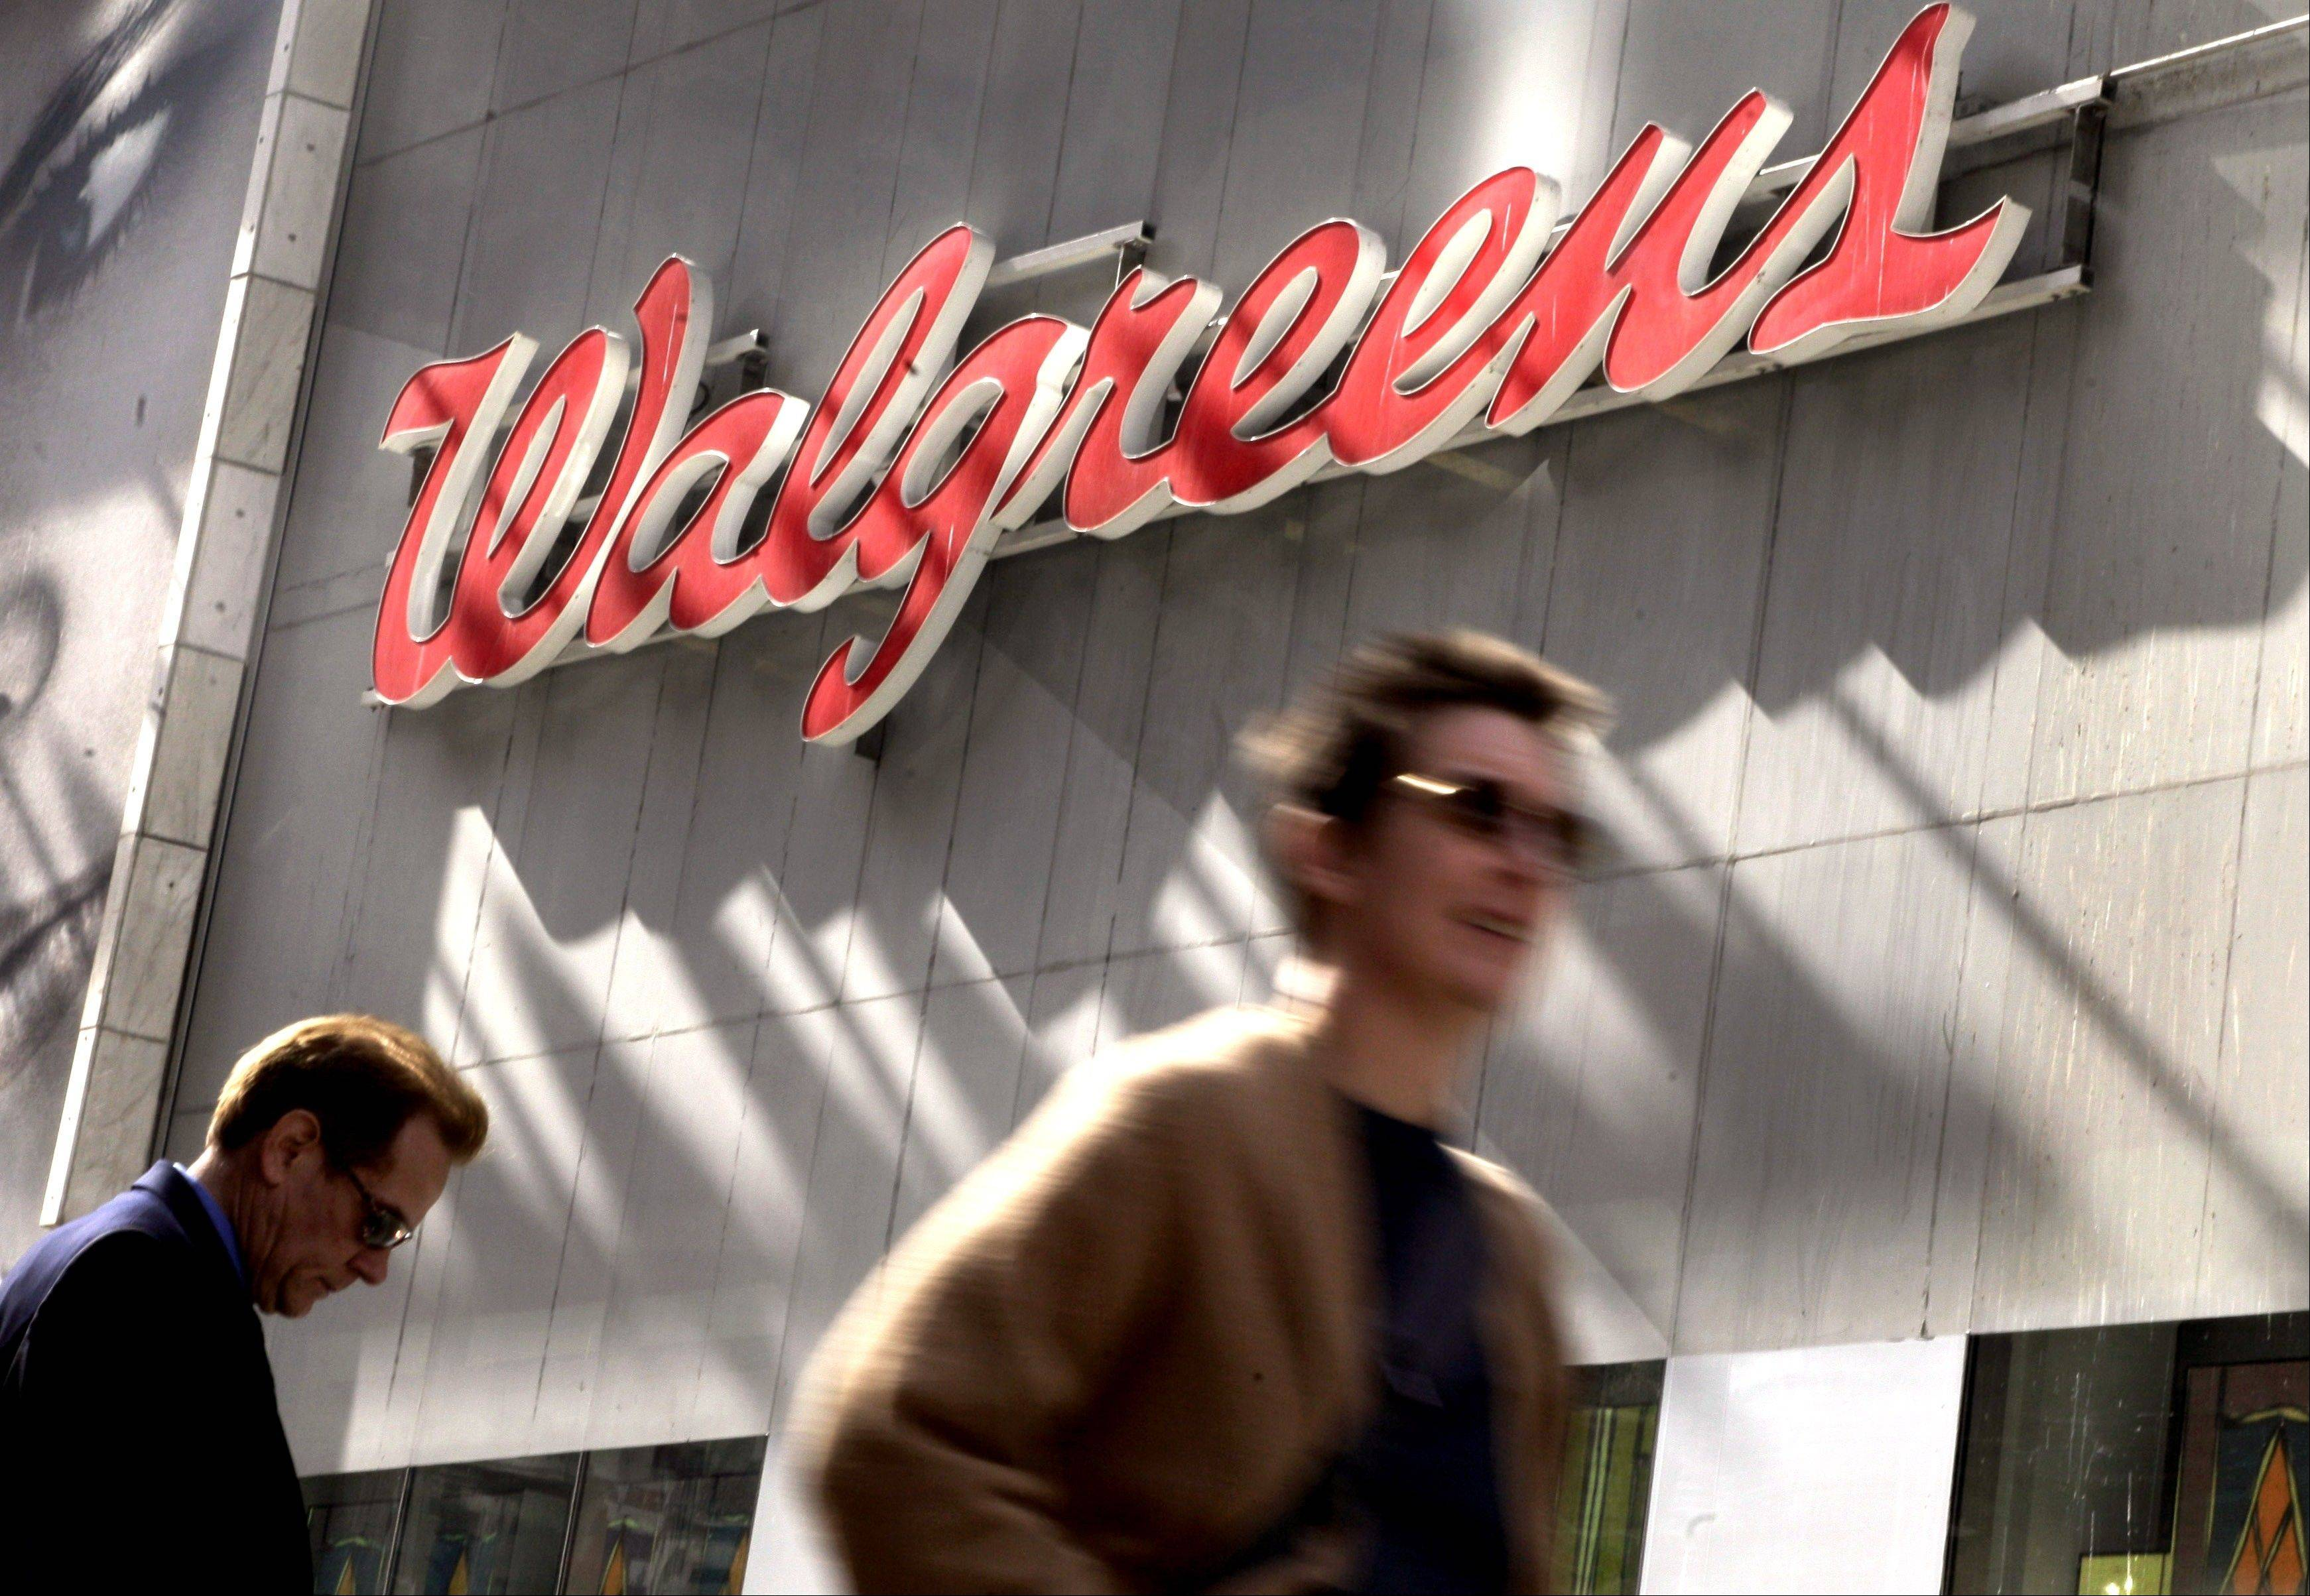 Walgreens wants to reward customers for merely taking a walk, and Rite Aid will help cover trial gym memberships for some of its frequent shoppers. All the national drugstore chains now offer a free customer loyalty program loaded with incentives to use their cards. Walgreen Co., the nation's largest drugstore chain, became the latest when it unveiled its Balance Rewards program in September 2012.